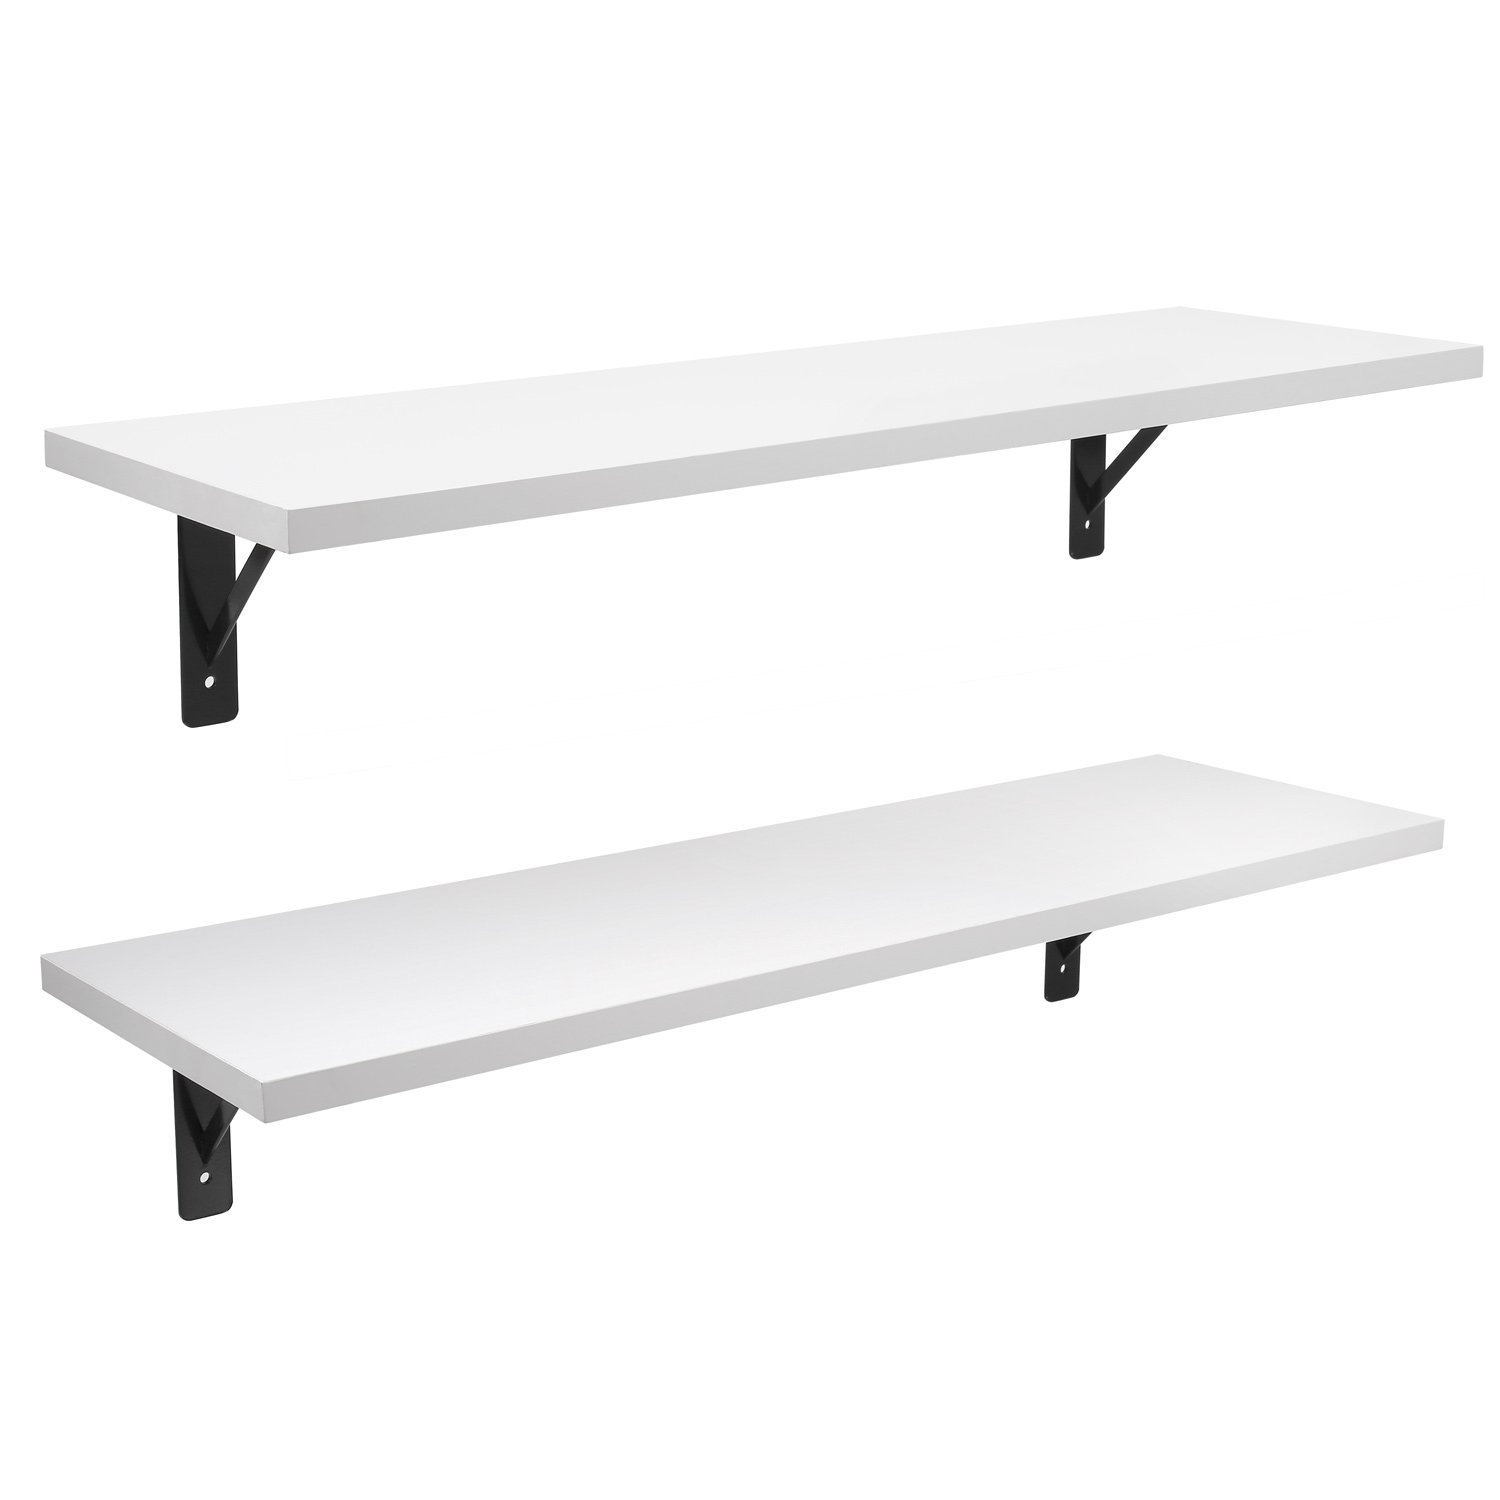 display ledge shelf floating shelves wall mounted with bracket mount oak shelving unit and systems brackets industrial kitchen island bench gray wood victorian cast iron